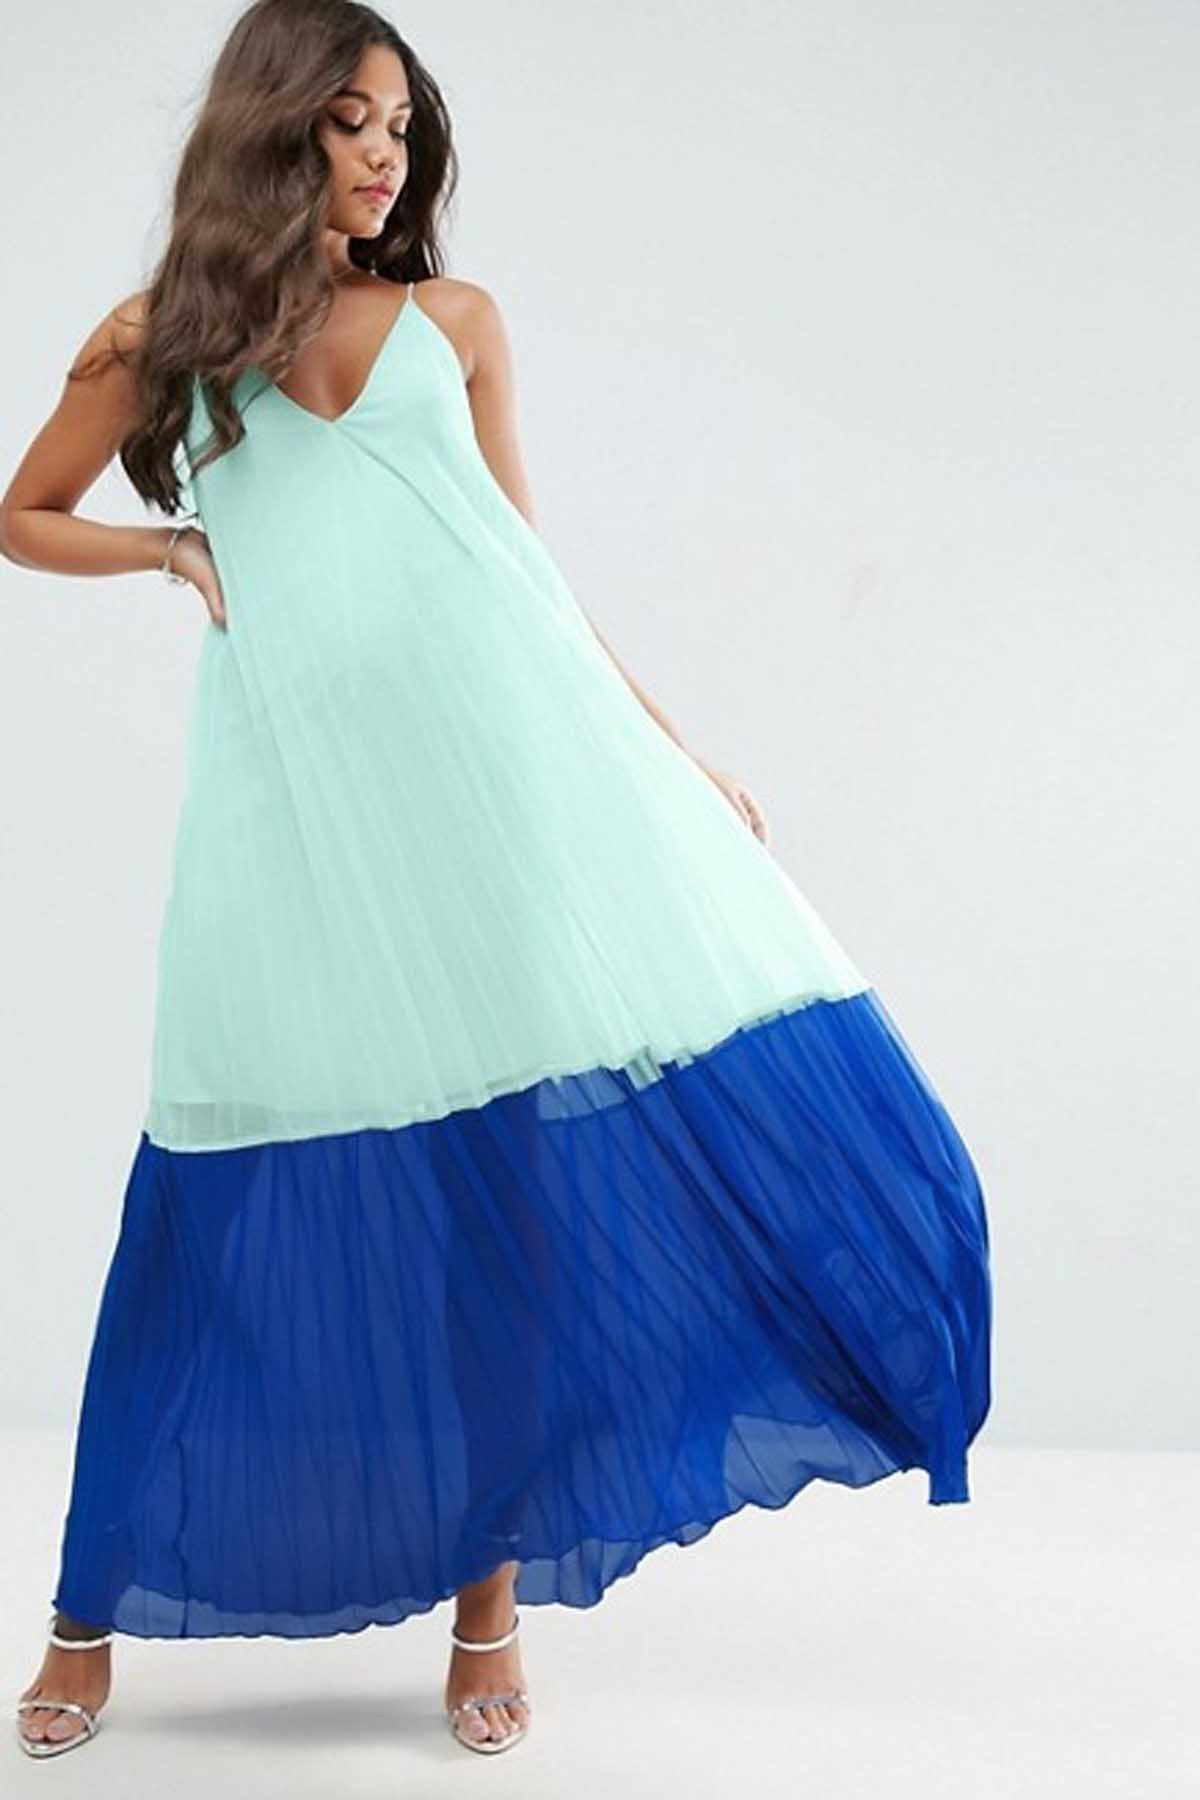 Fantastic Dress For Company Christmas Party Pictures Inspiration ...